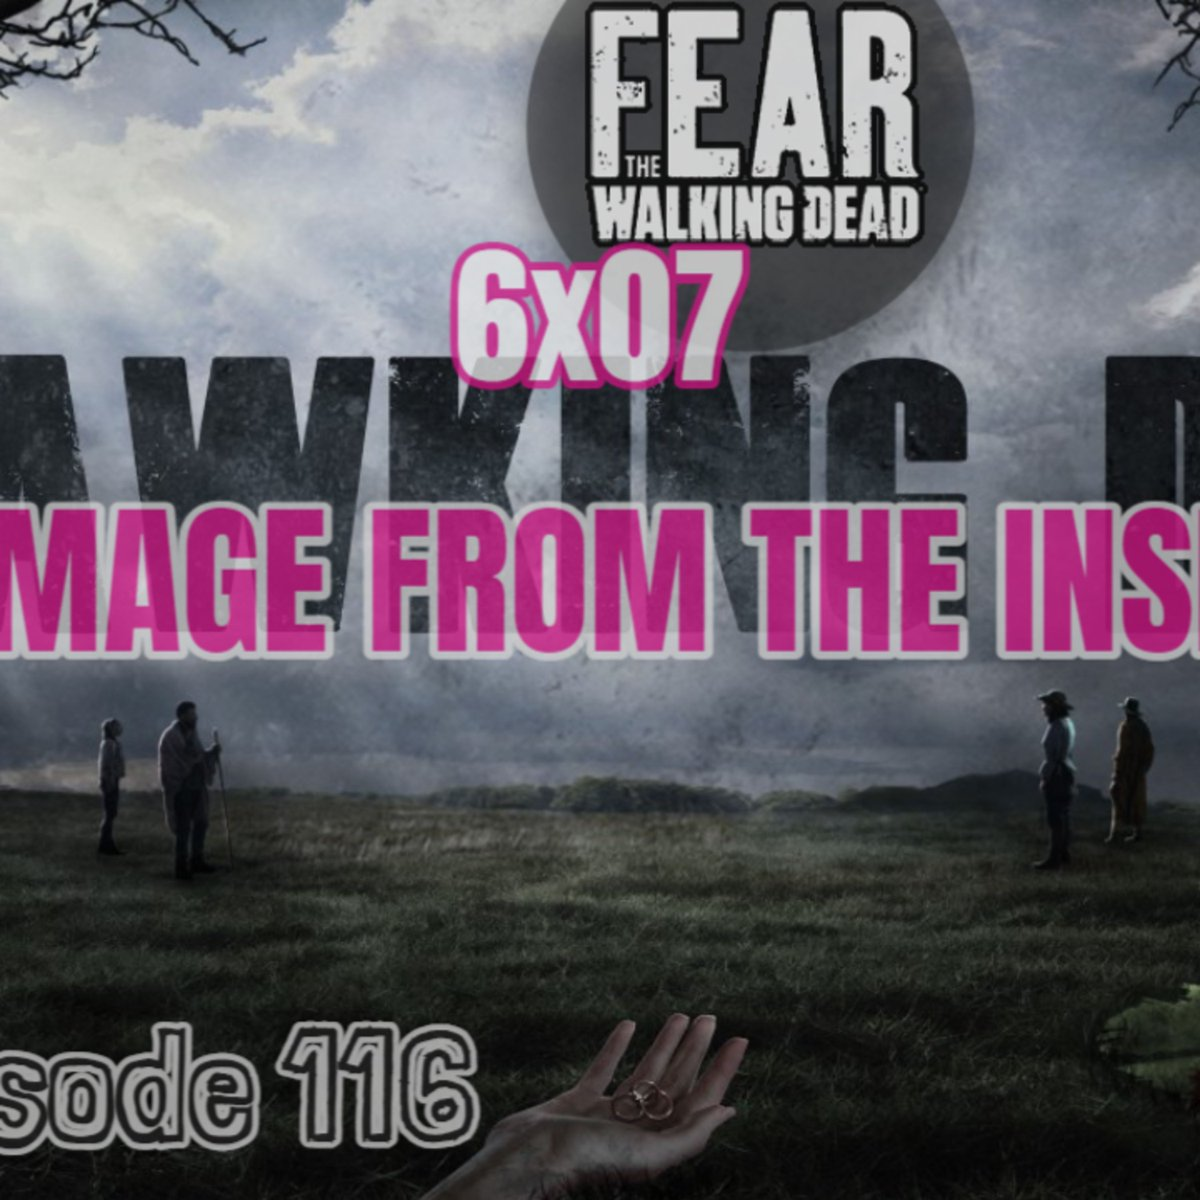 "🎧#Podcast Update!🔊[Episode 116] #FearTWDSeason6, Episode 7 of #FearTheWalkingDead, ""Damage From The Inside"" 👂🔗➡ https://t.co/LRnlPFvVIi  #Stitcher #RadioPublic #ApplePodcasts #Spotify #GooglePodcasts #SpotifyPodcast #iTunes #iTunesPodcast #Castbox #PocketCasts #FearTWD #FTWD https://t.co/kpHLSt8kVv"